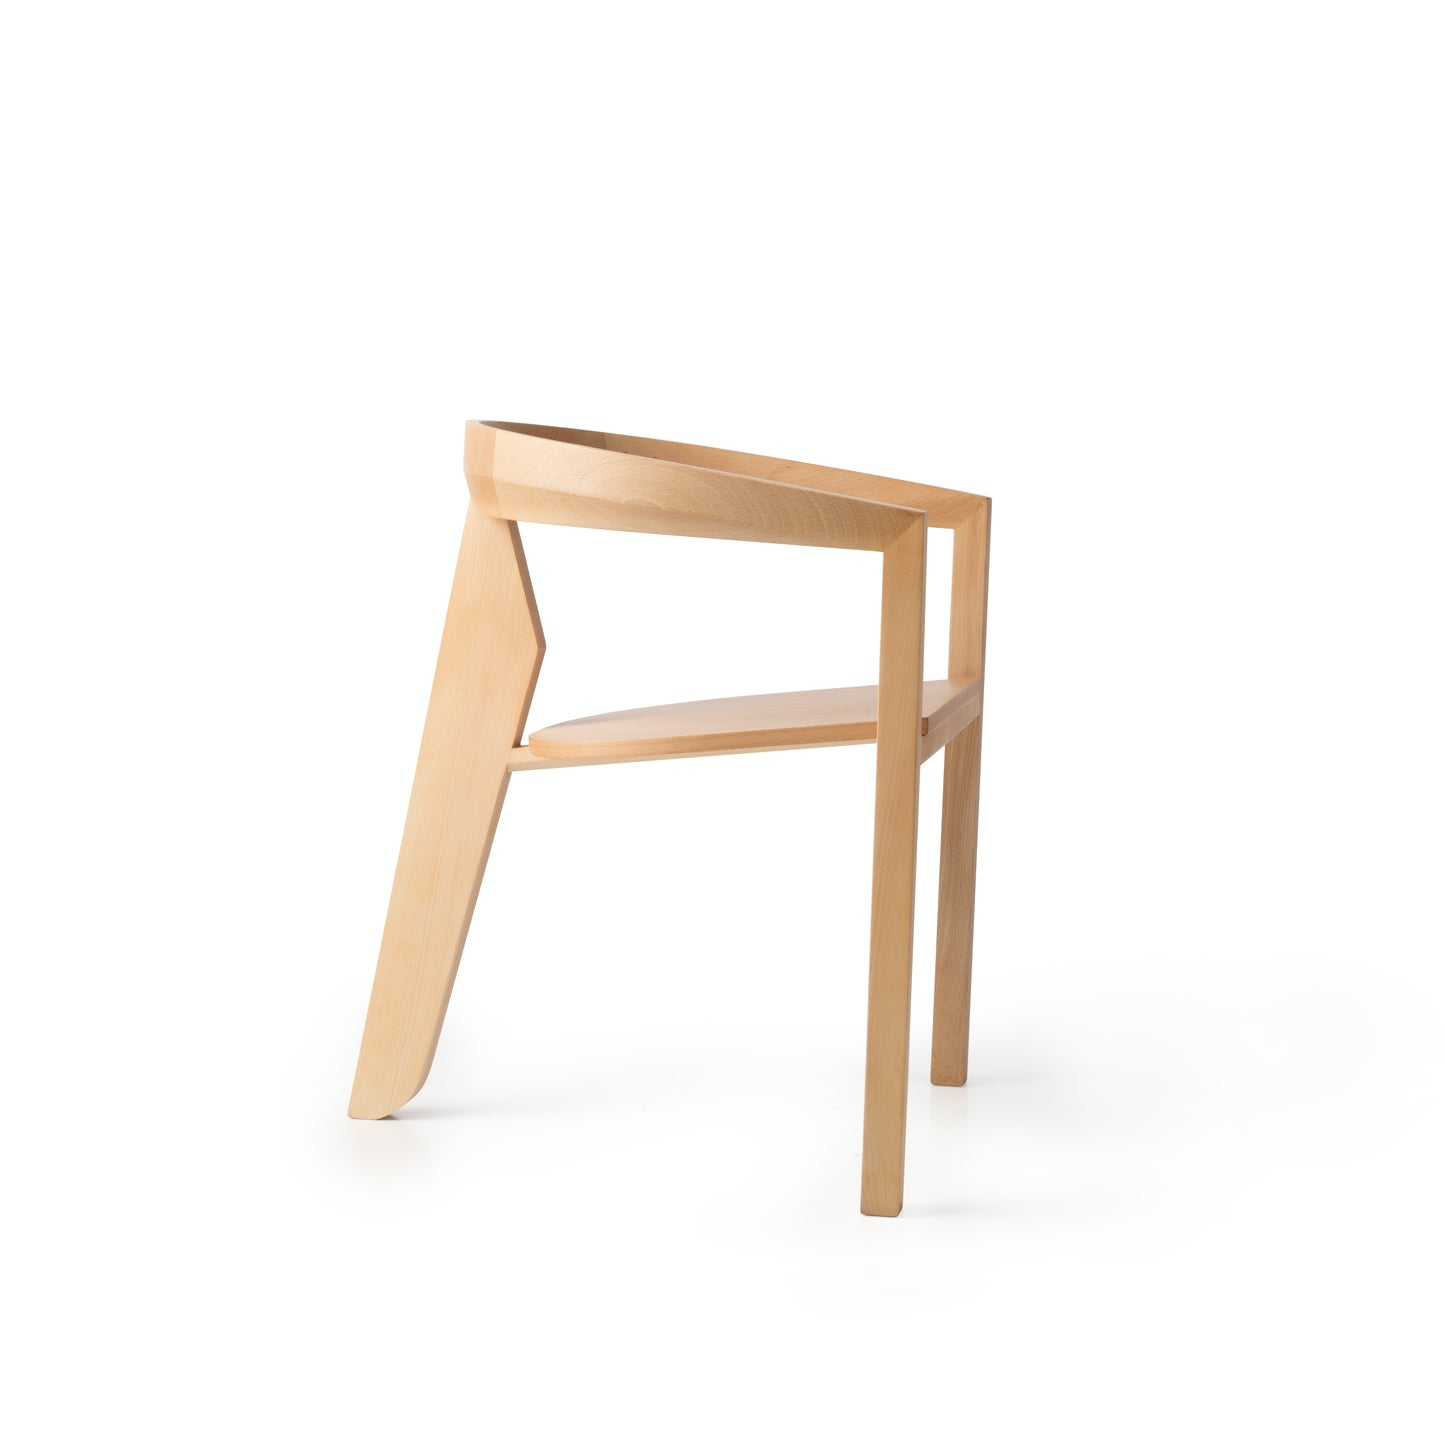 Rubble Inerior Design Marketplace, Icon Wood Dining Chair by Miguel Soeiro Porventura